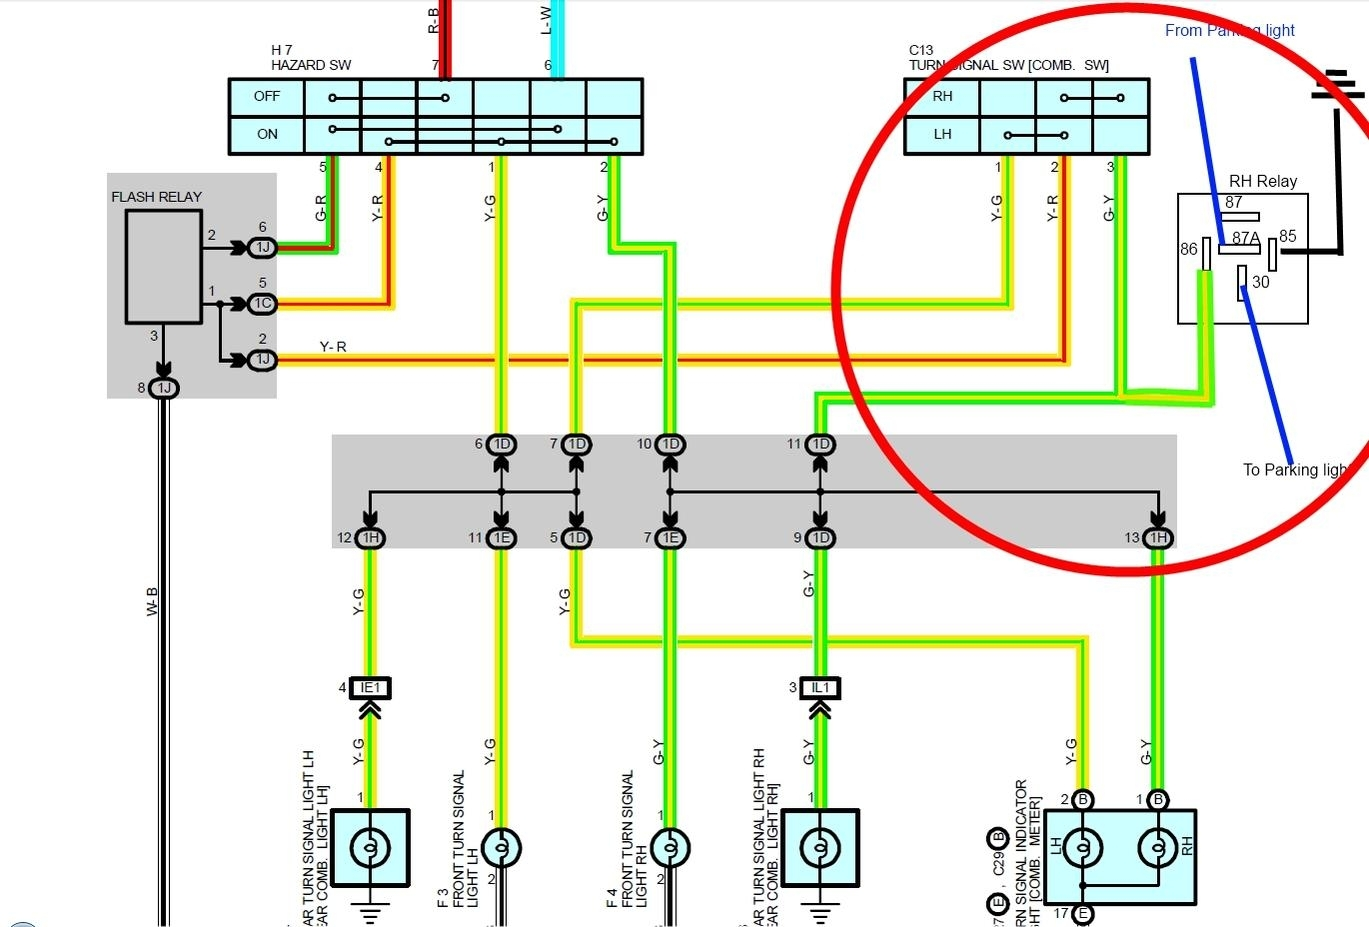 2012 ram trailer light wiring diagram html